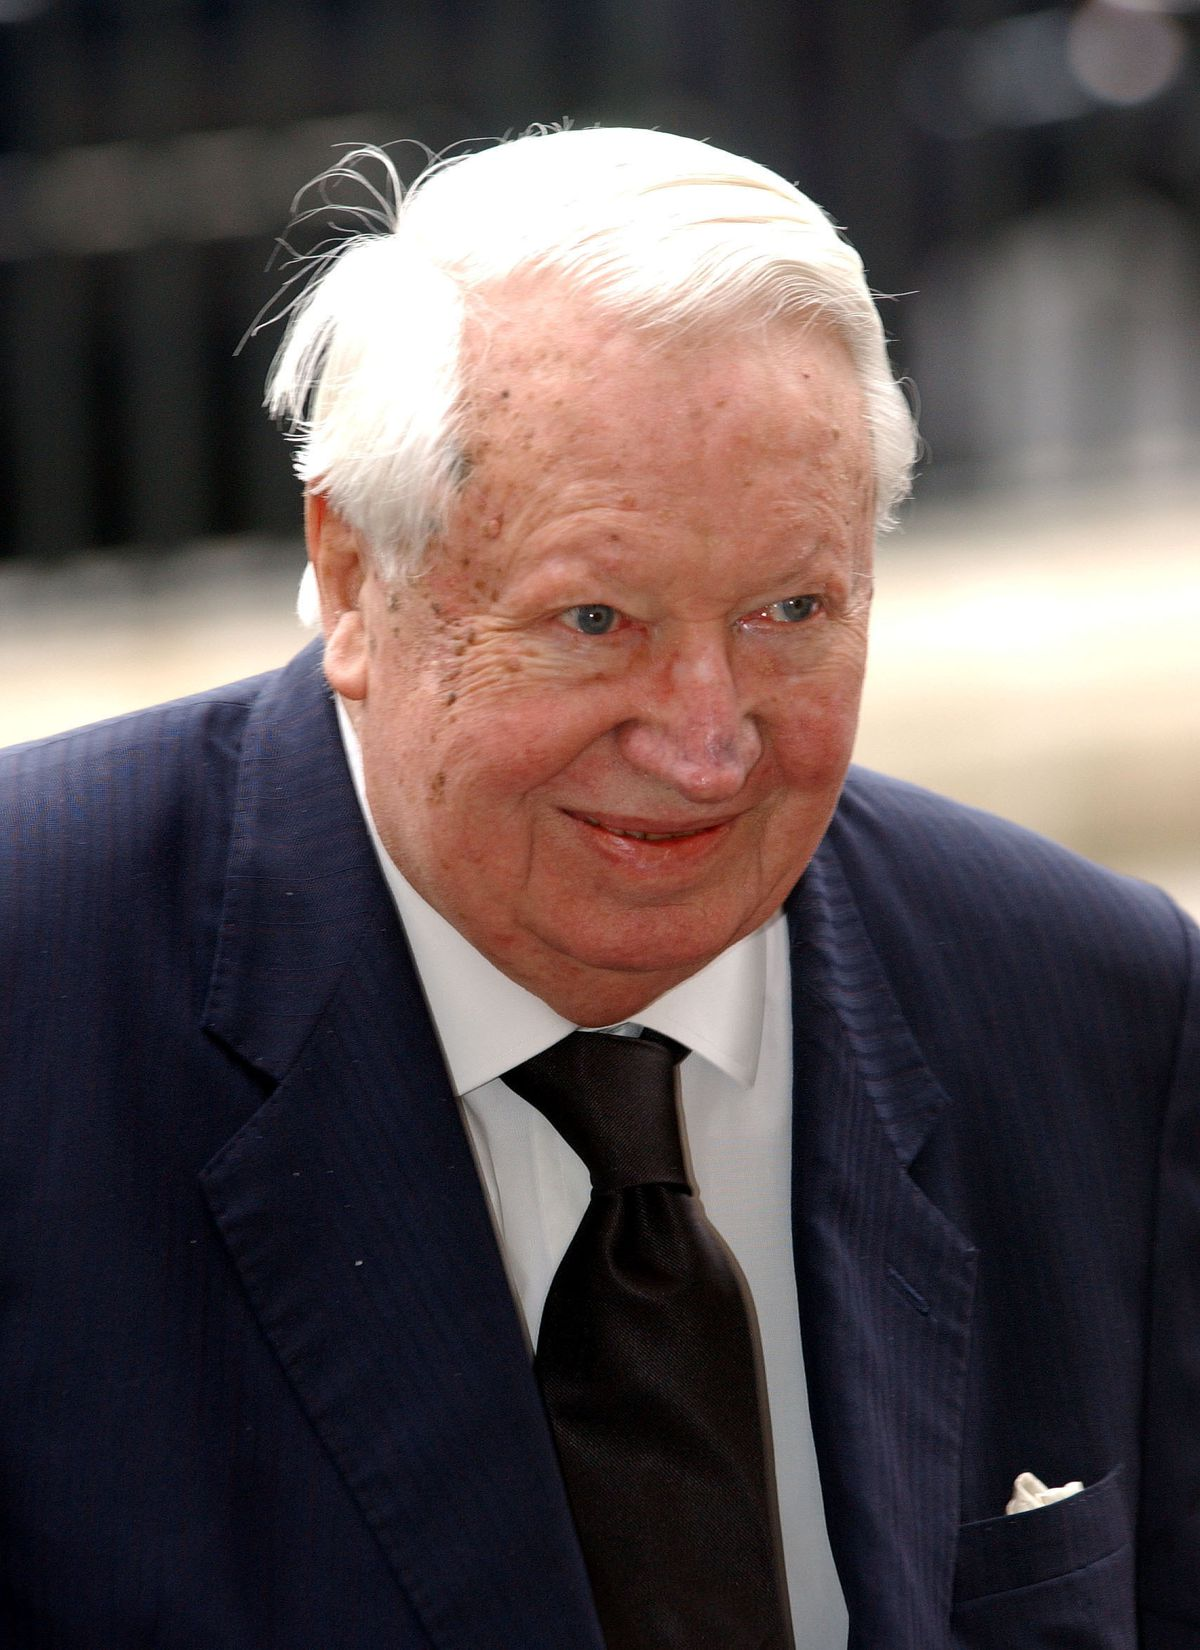 Sir Ted Heath negotiated the release of some prisoners